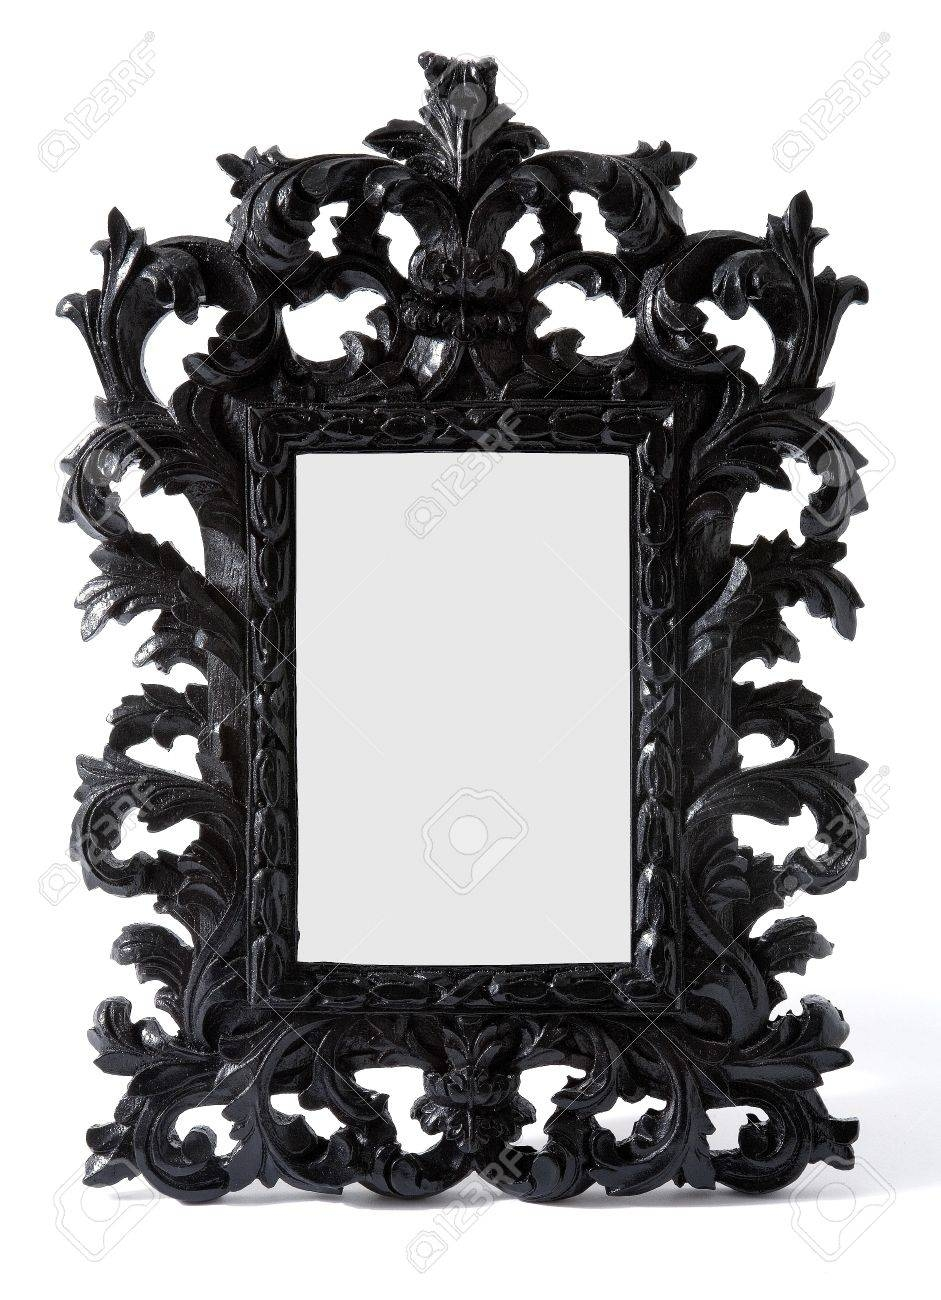 Baroque Black Painted Carved Wood Mirror Frame Isolated On White Intended For Black Baroque Mirrors (View 5 of 25)